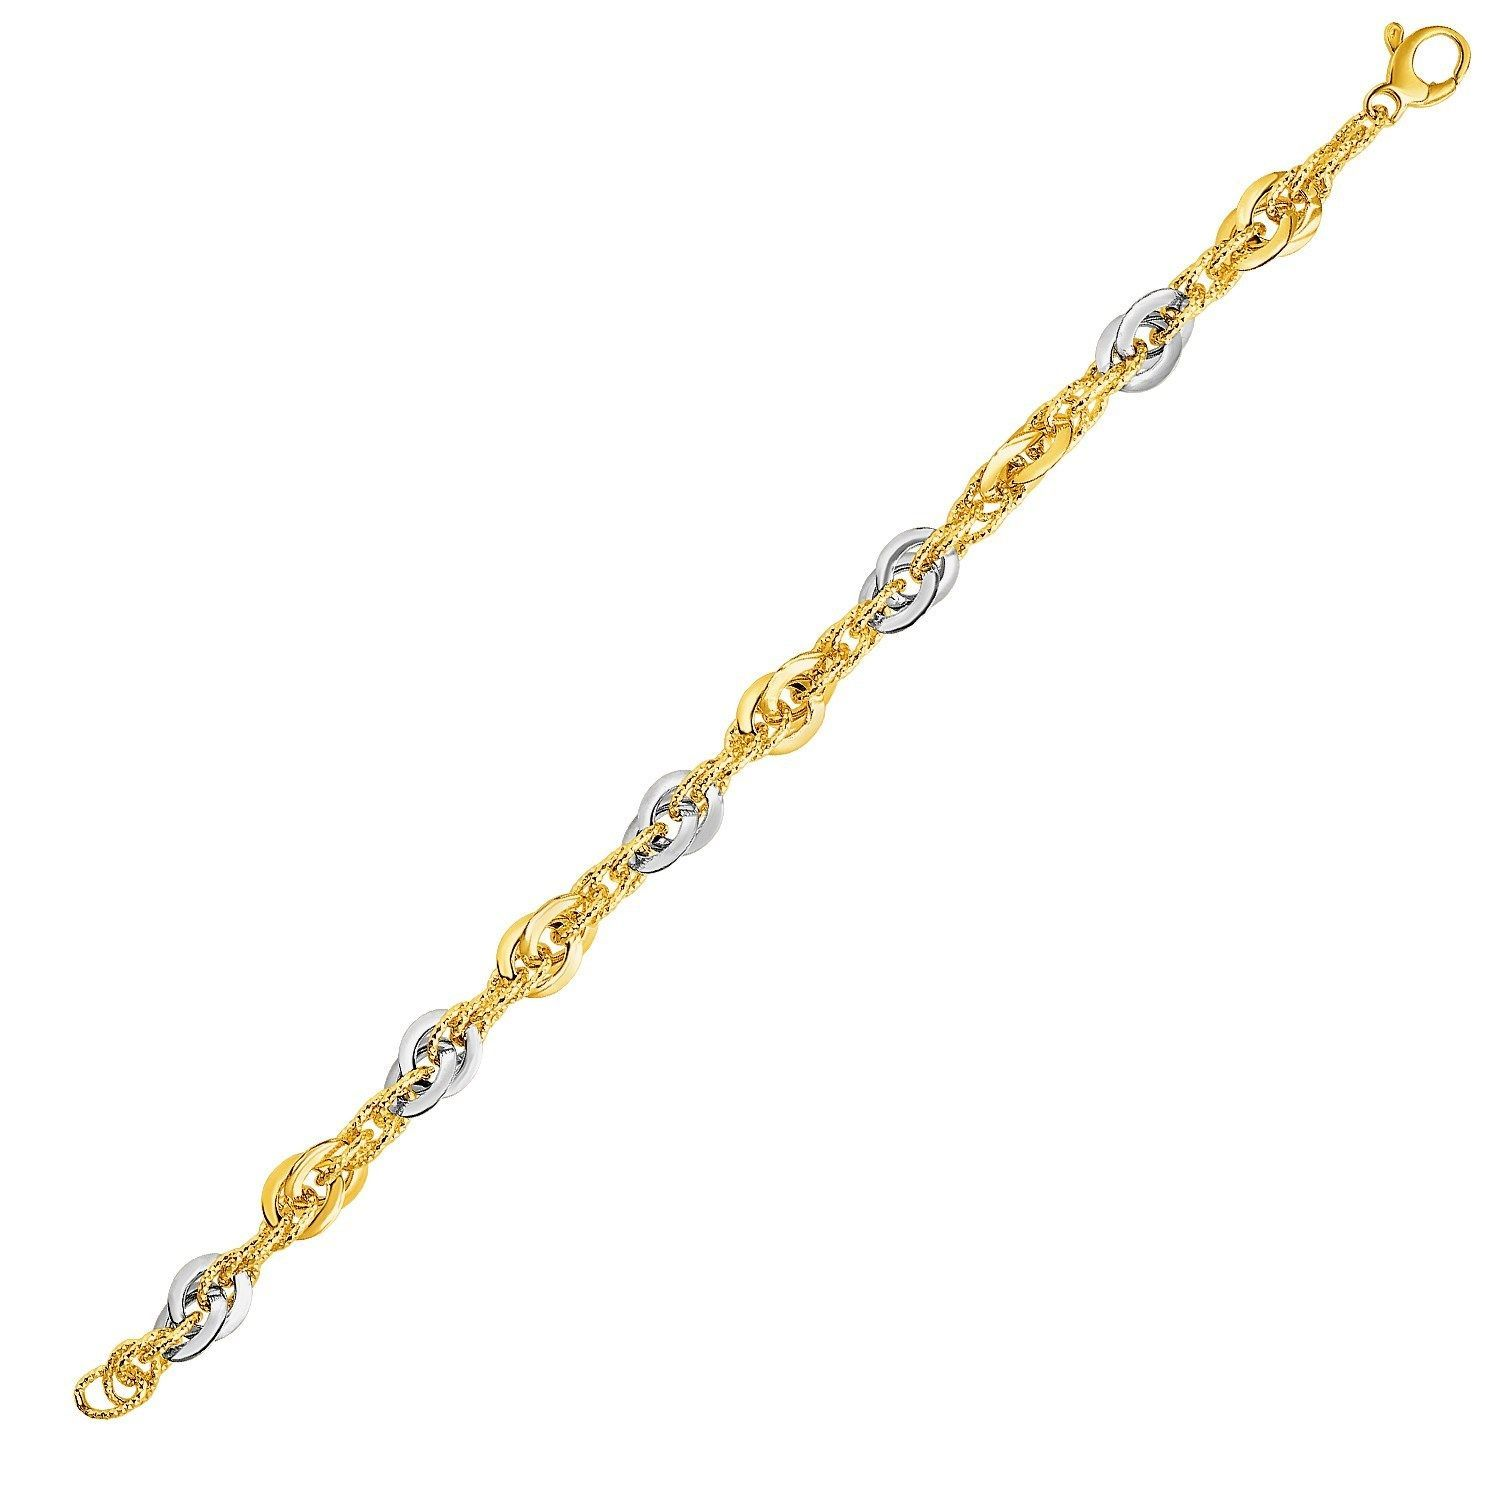 14k Two-Tone Yellow and White Gold Double Link Textured Bracelet